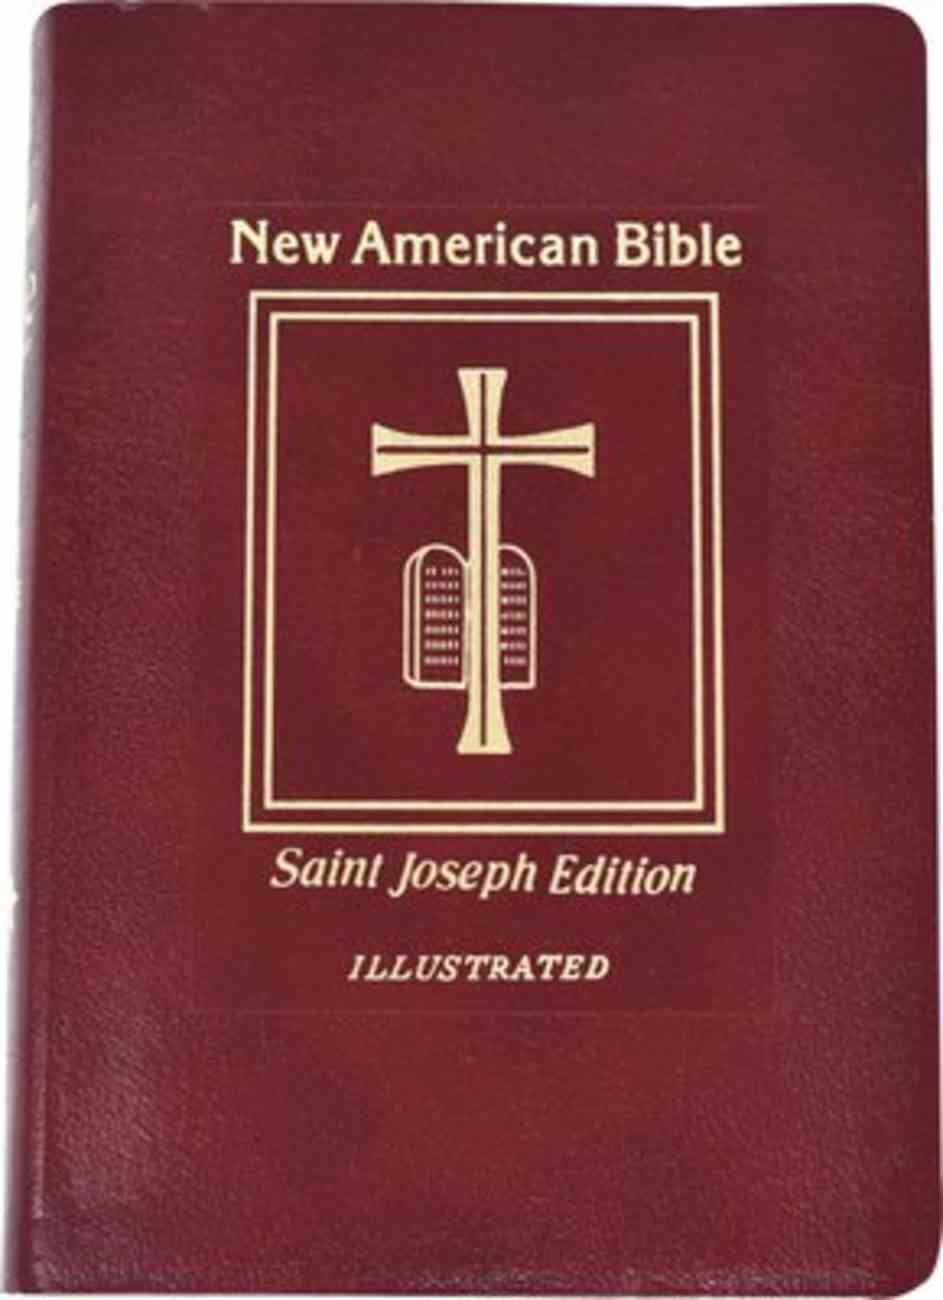 Nab St. Joseph New American Bible, the Giant Print Red Imitation Leather